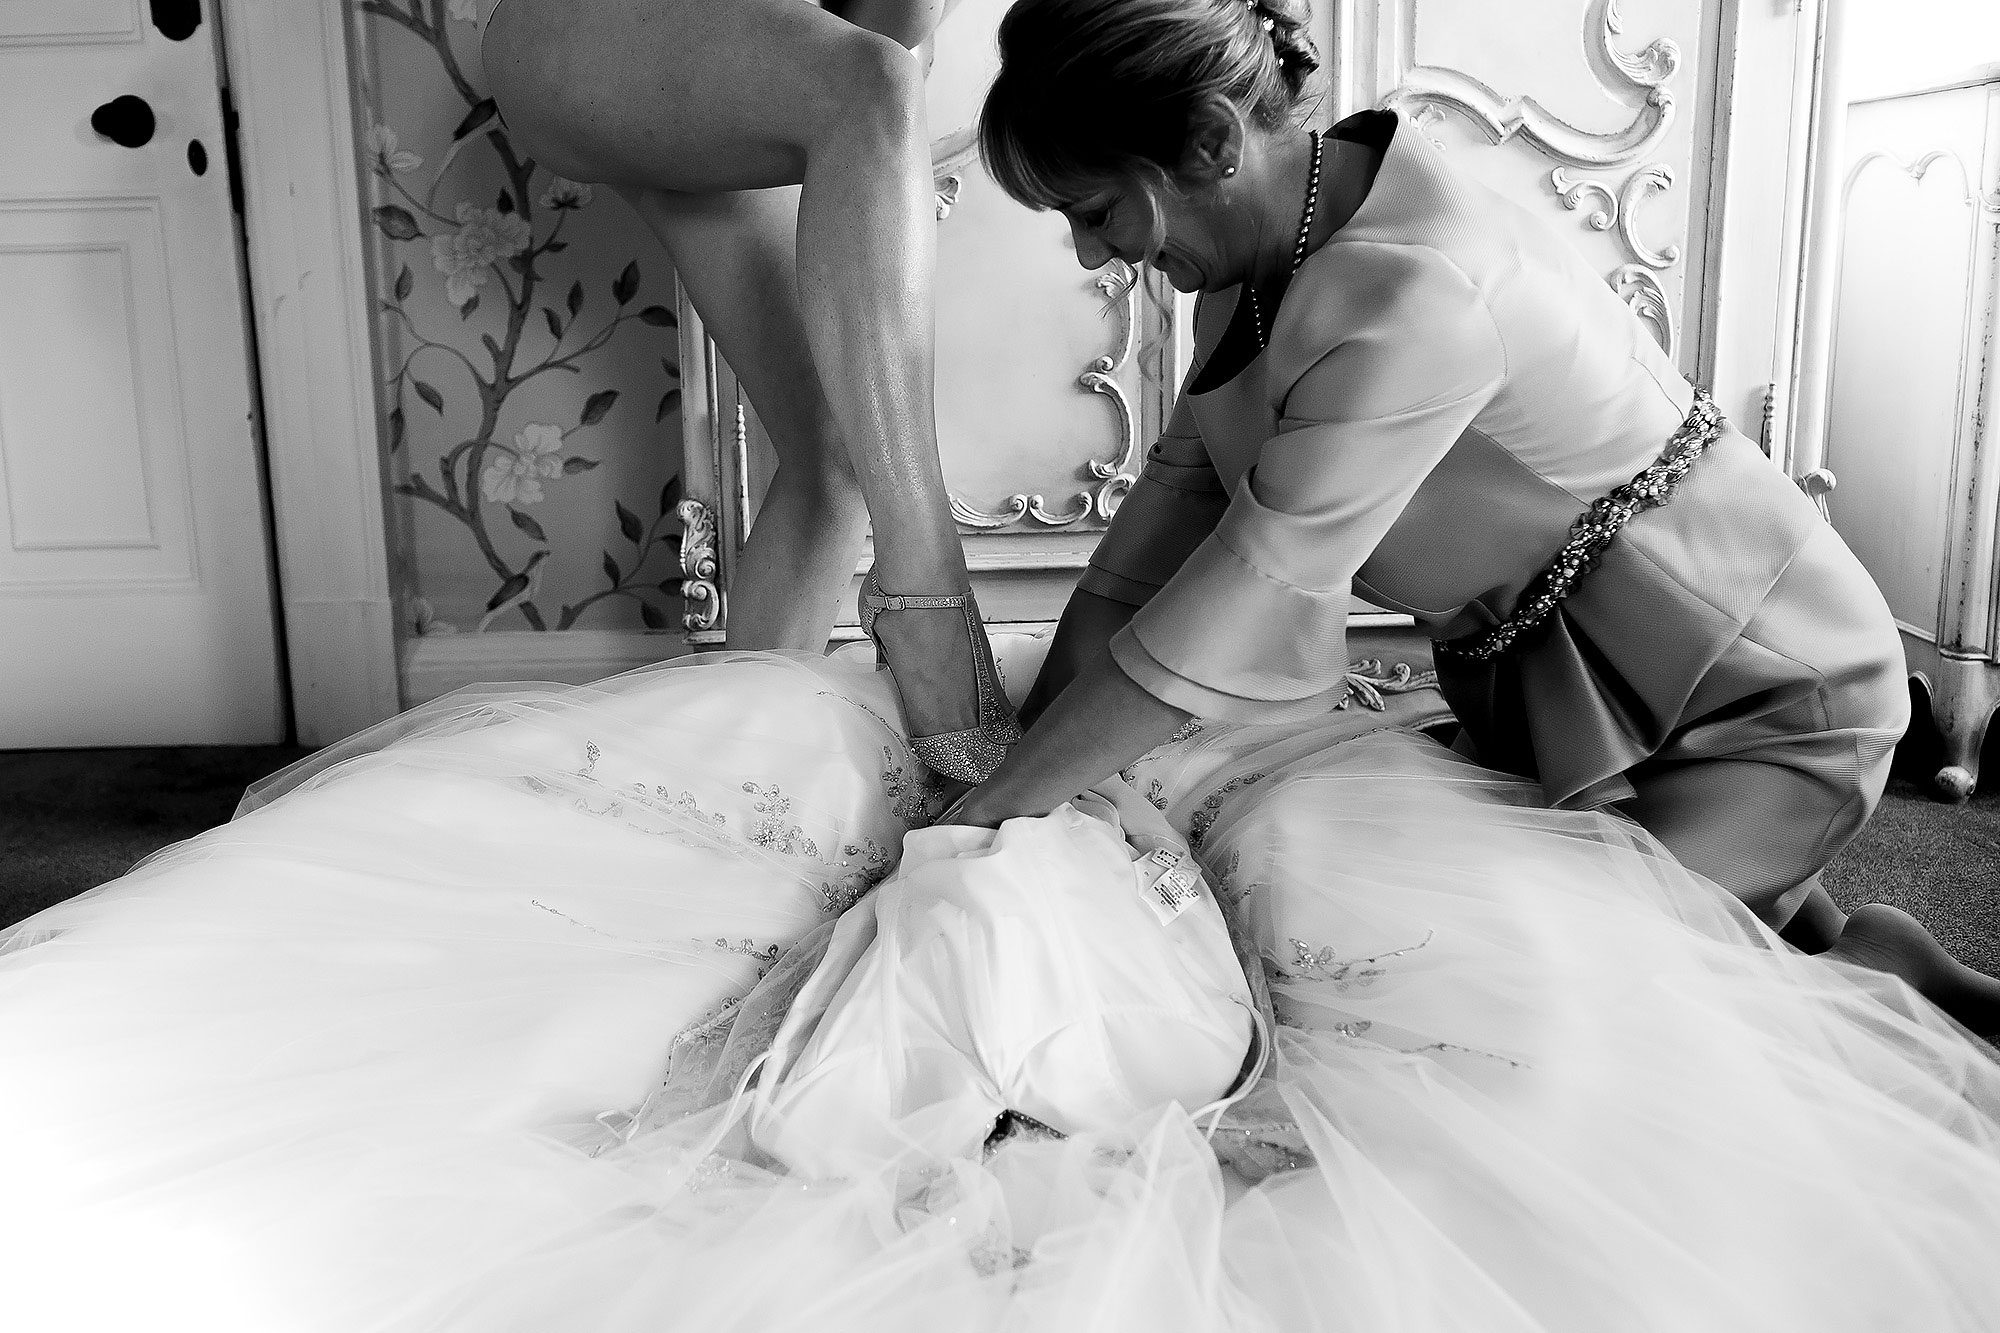 Brides naked leg wearing wedding shoes as she steps into her wedding dress | Eaves Hall wedding photography by Toni Darcy